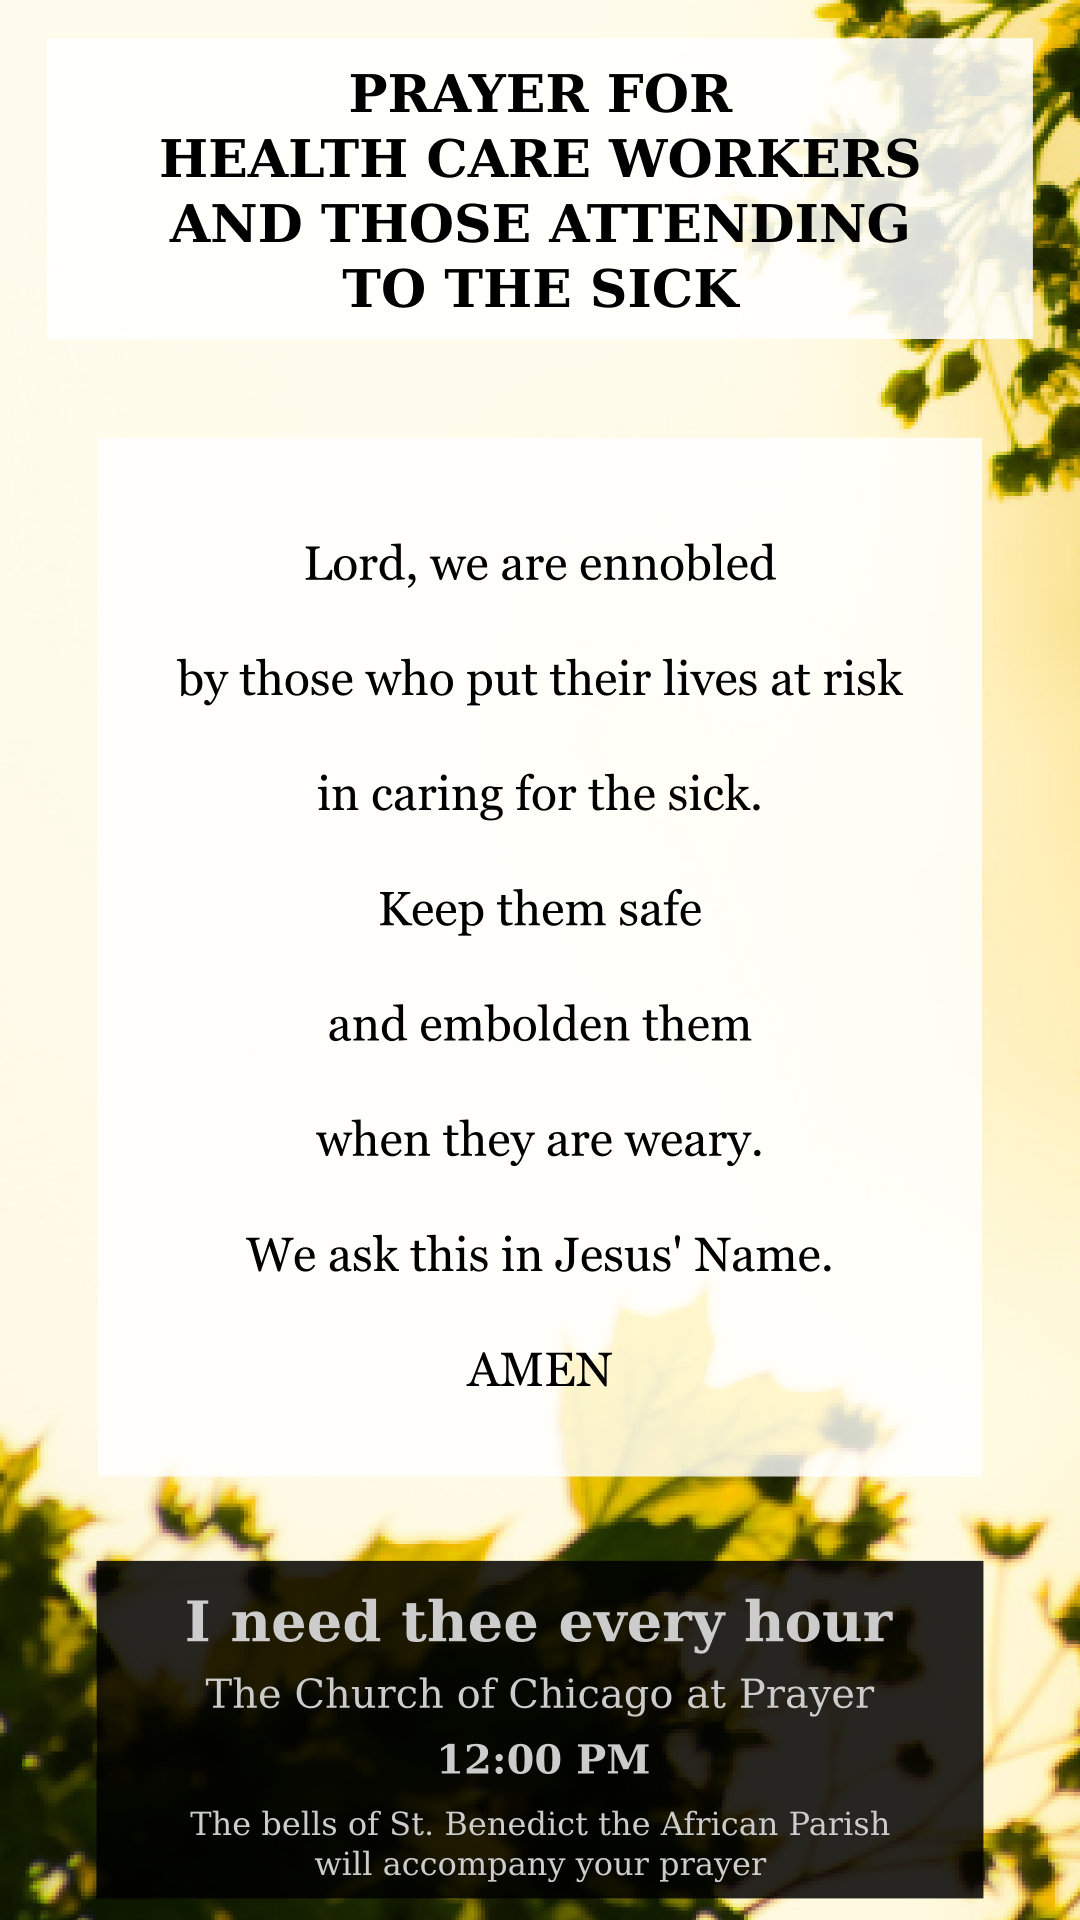 Prayer card for health care workers and those attending to the sick